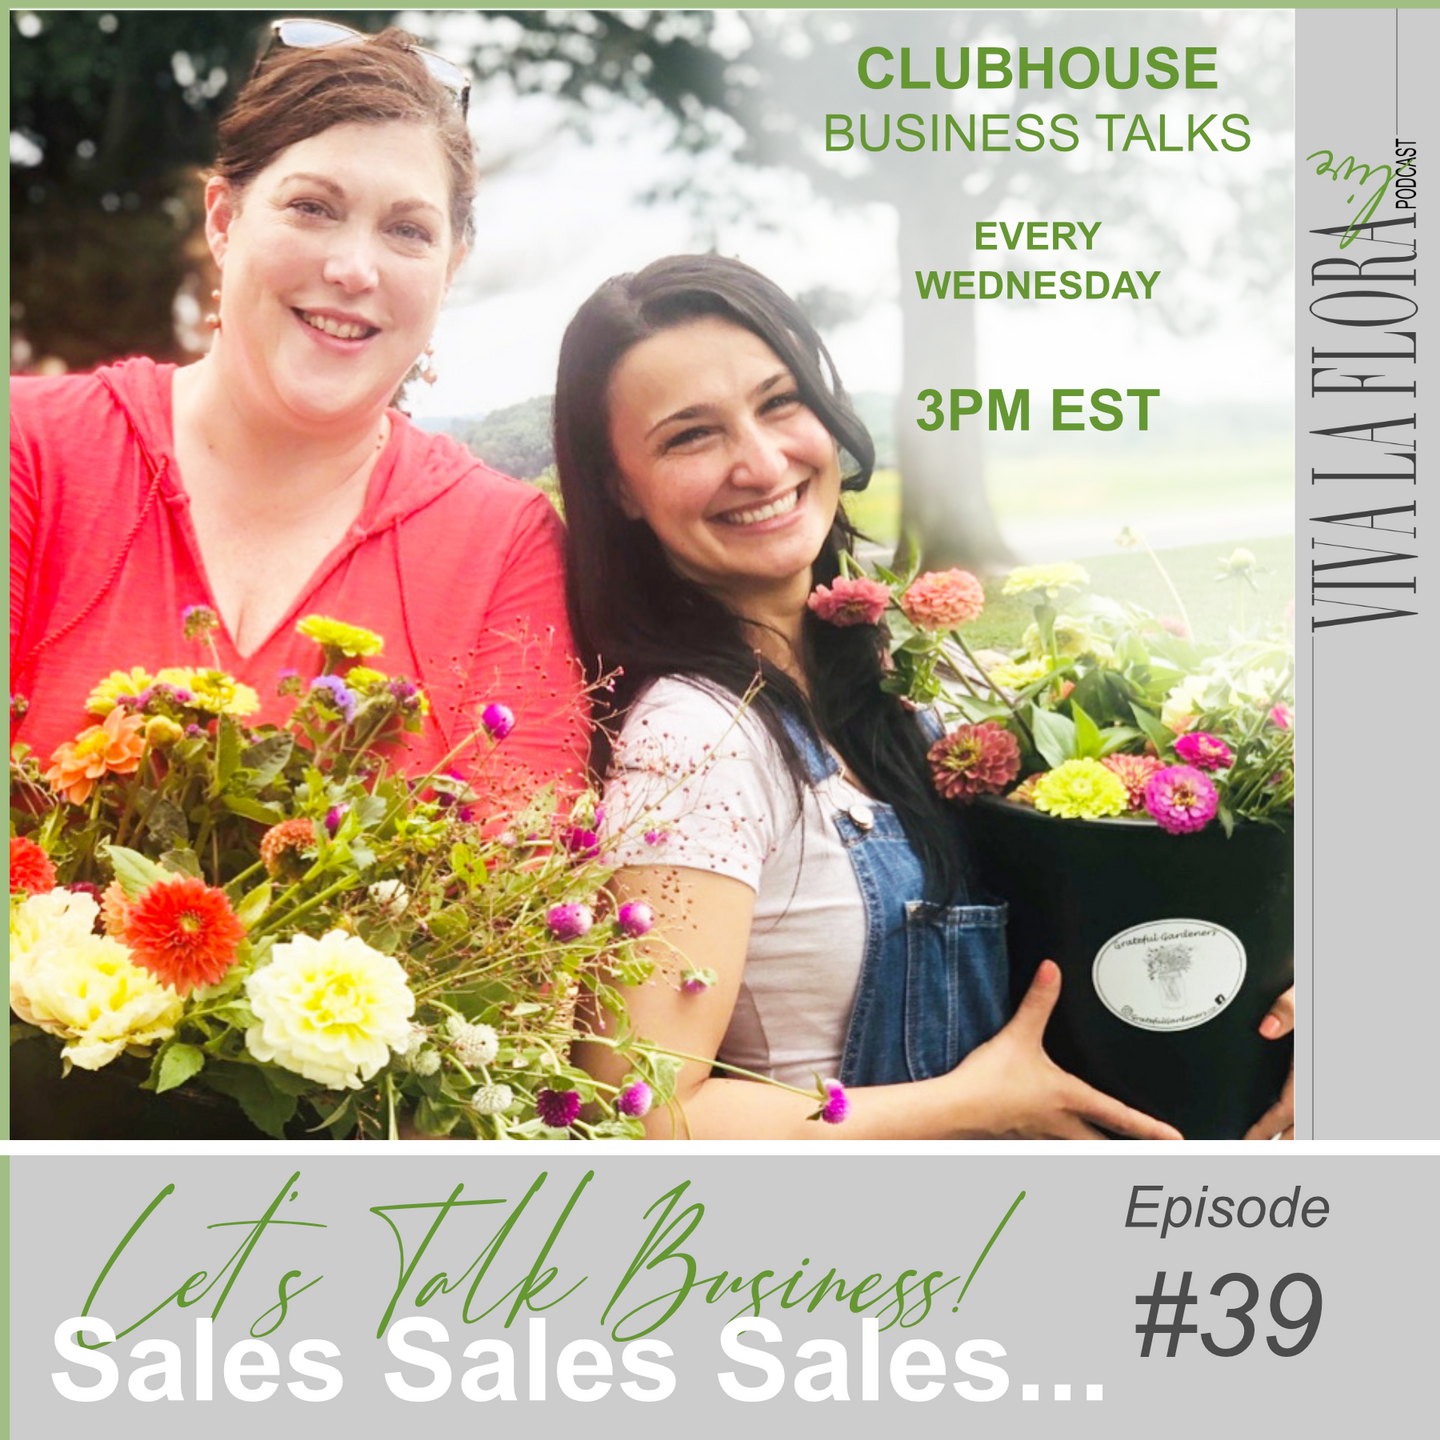 2 girls smiling on the cover of podcast episode for viva la flora live podcast